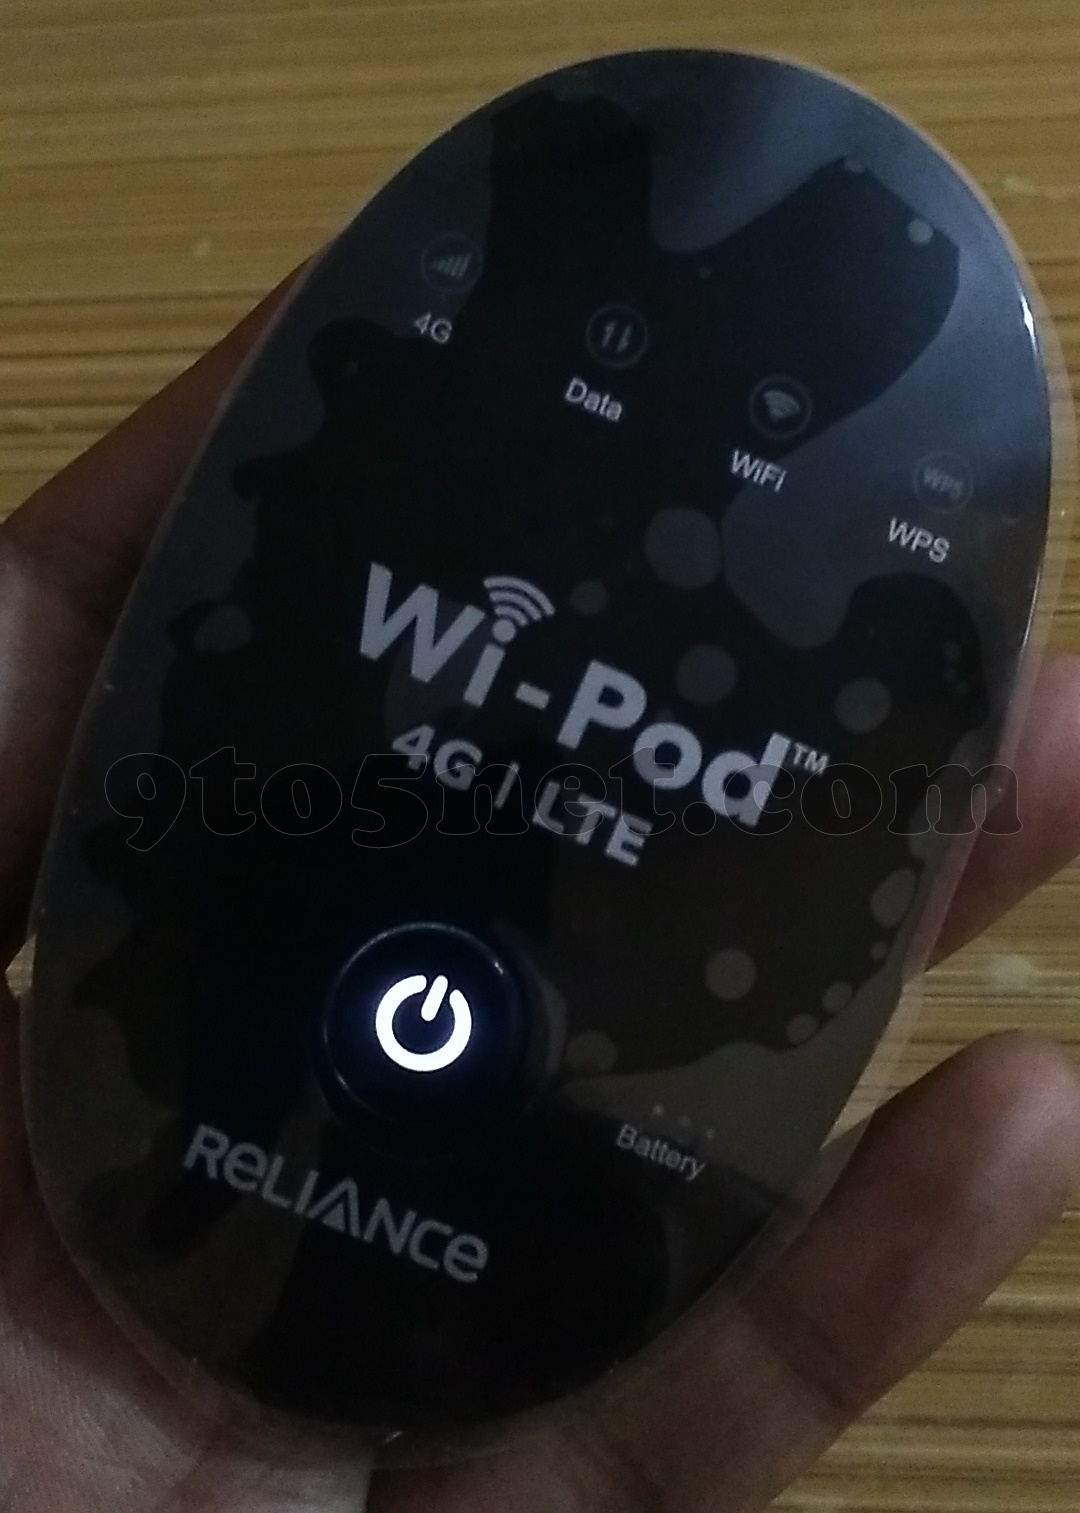 Review: Reliance Wi-Pod 4G LTE dongle-cum-pocket router with